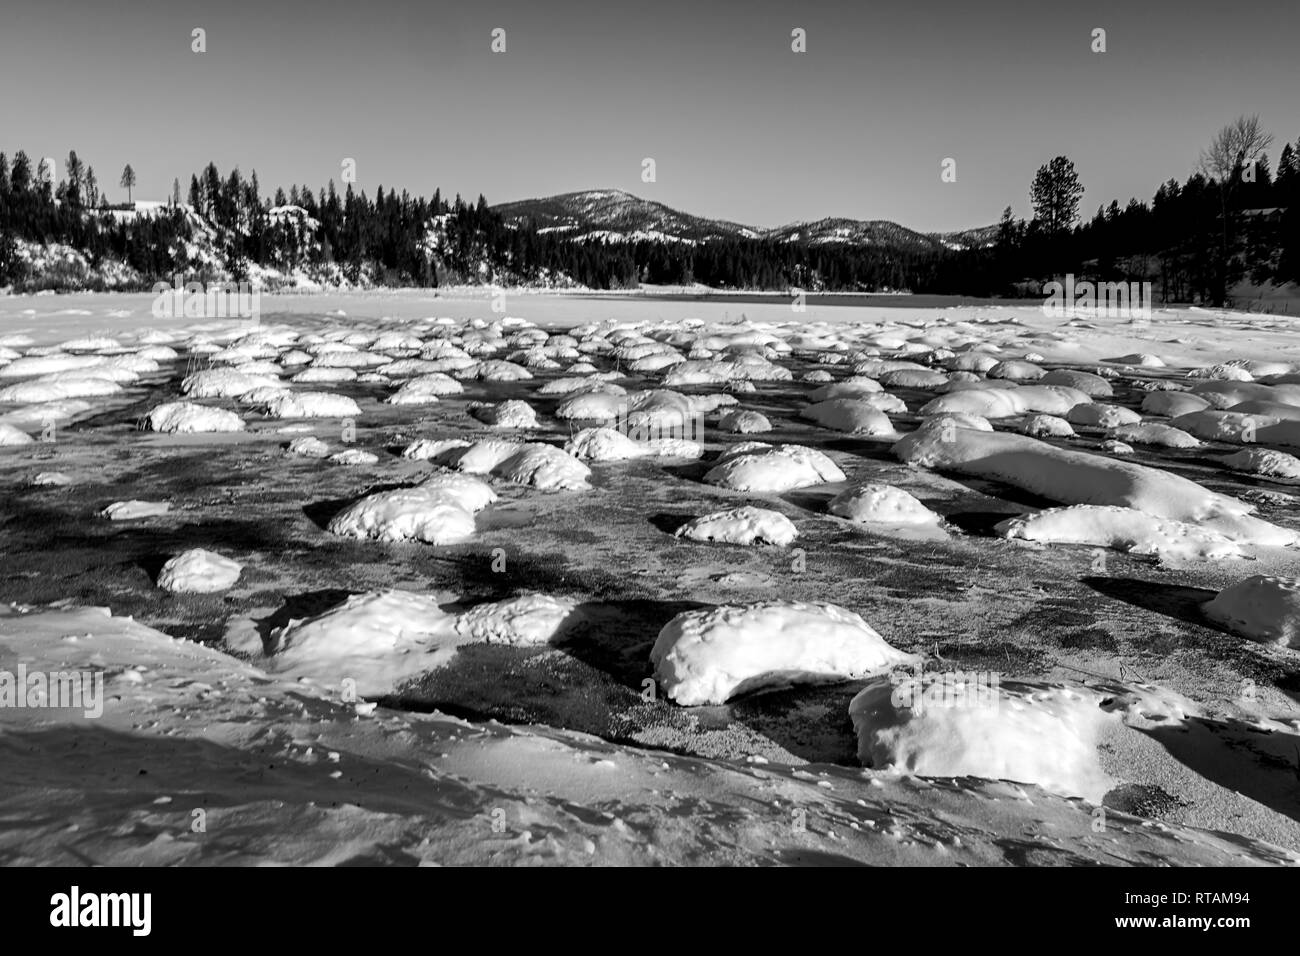 A black & white landscape photo of a cold winter scenic on a clear day in Hauser, Idaho. - Stock Image